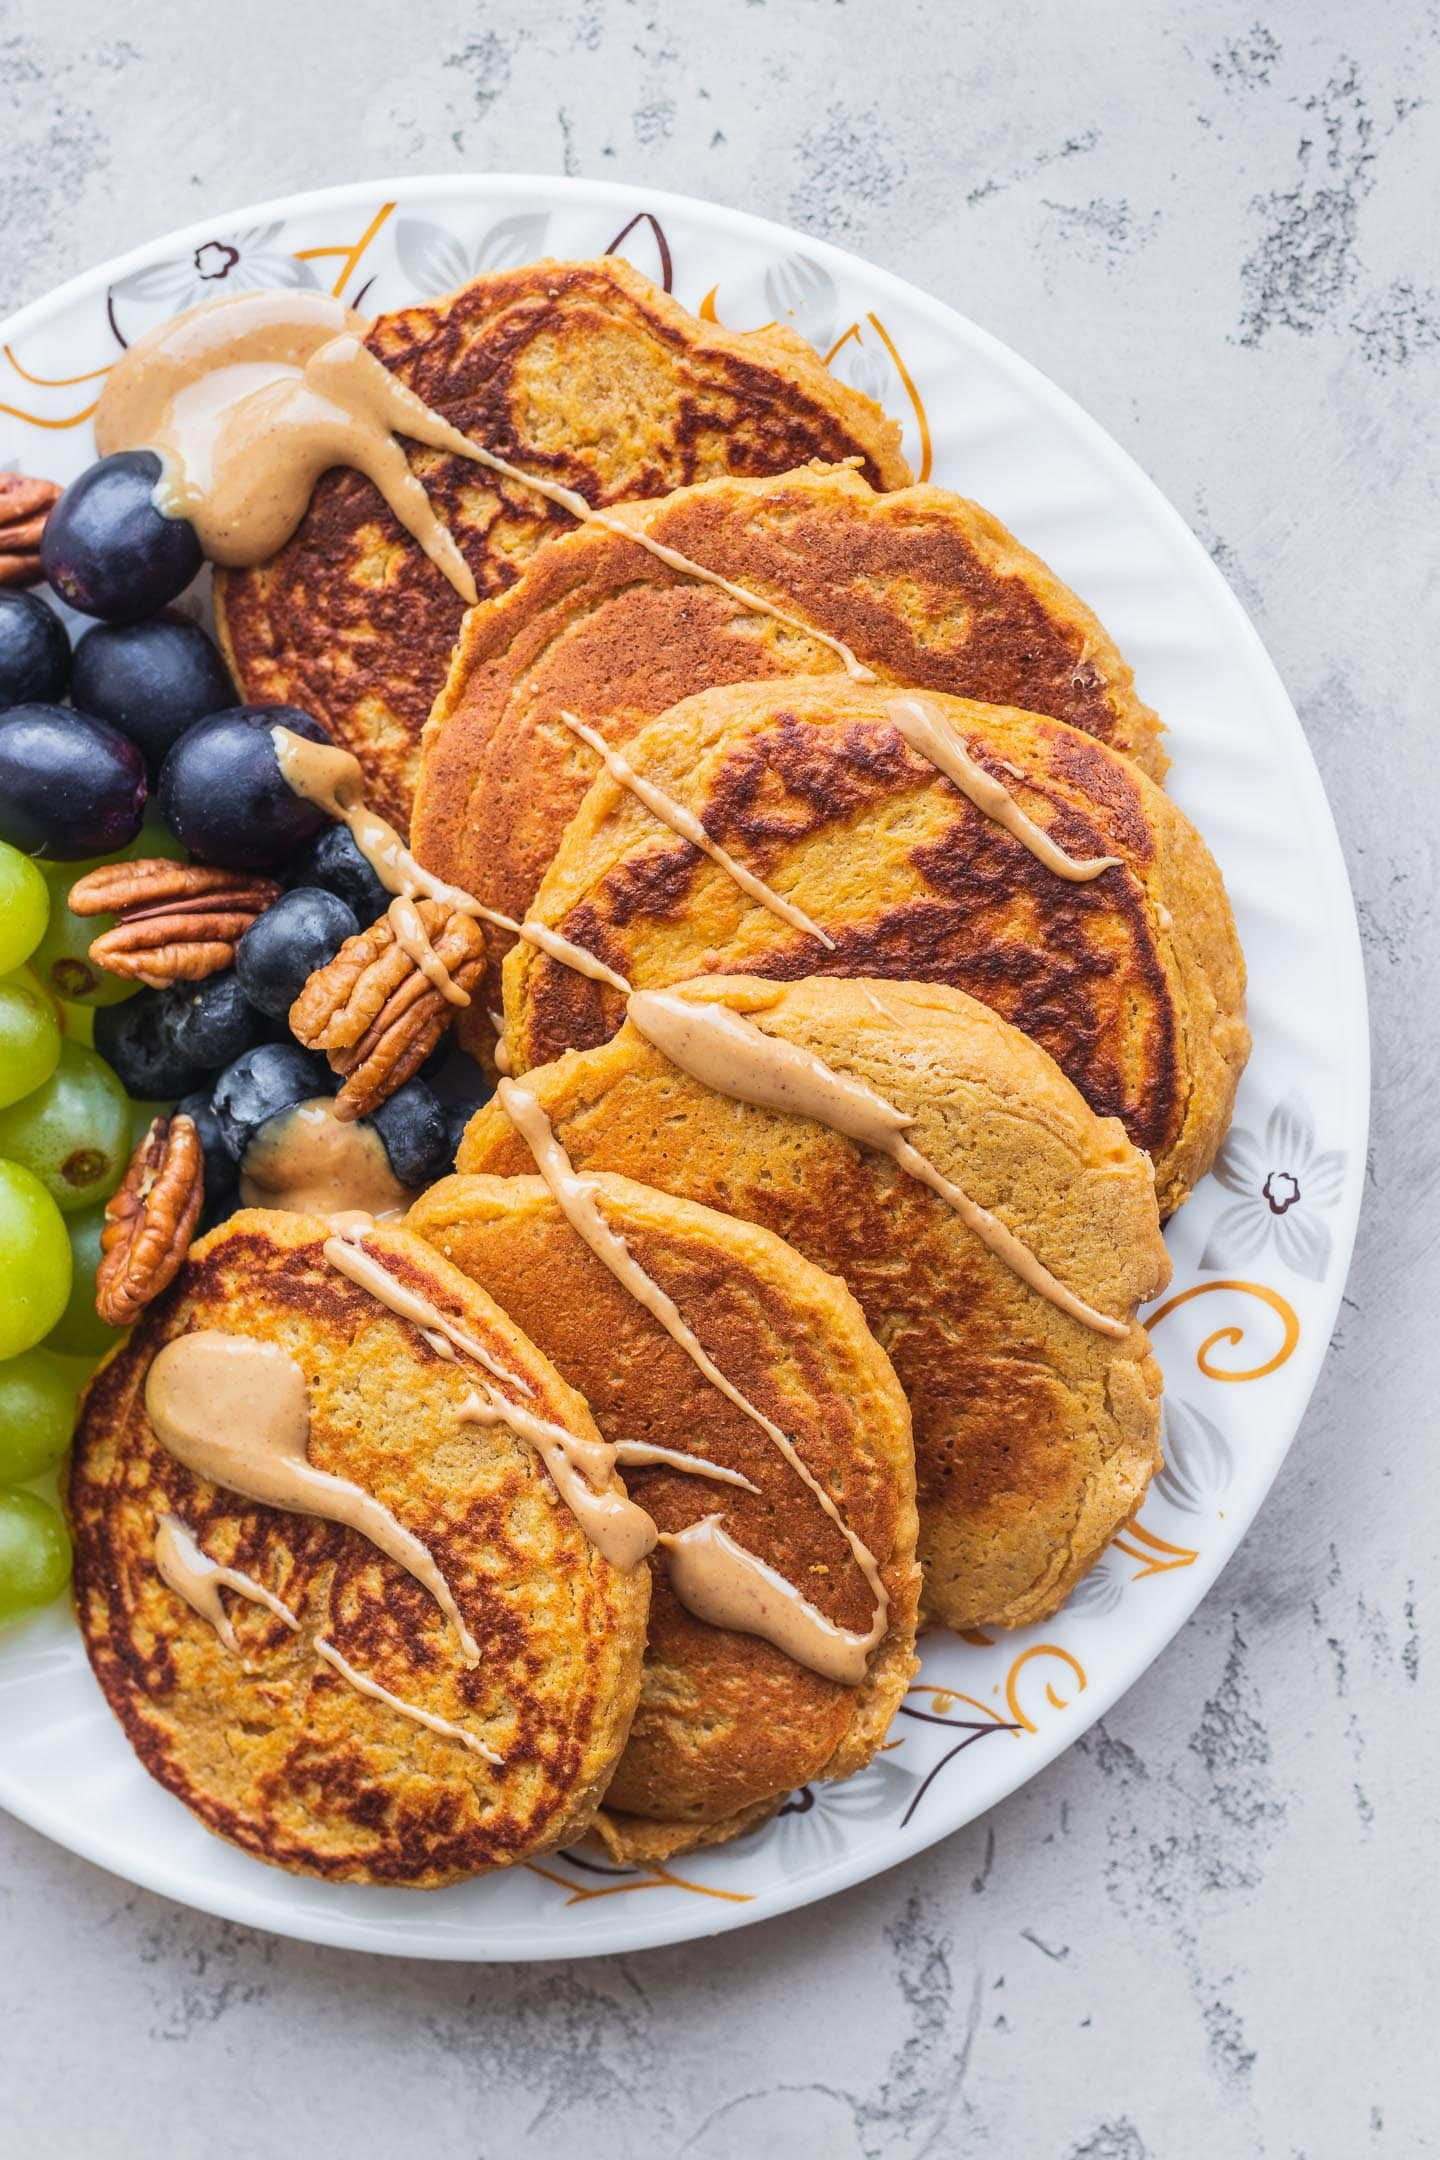 Pancakes on a white plate with peanut butter